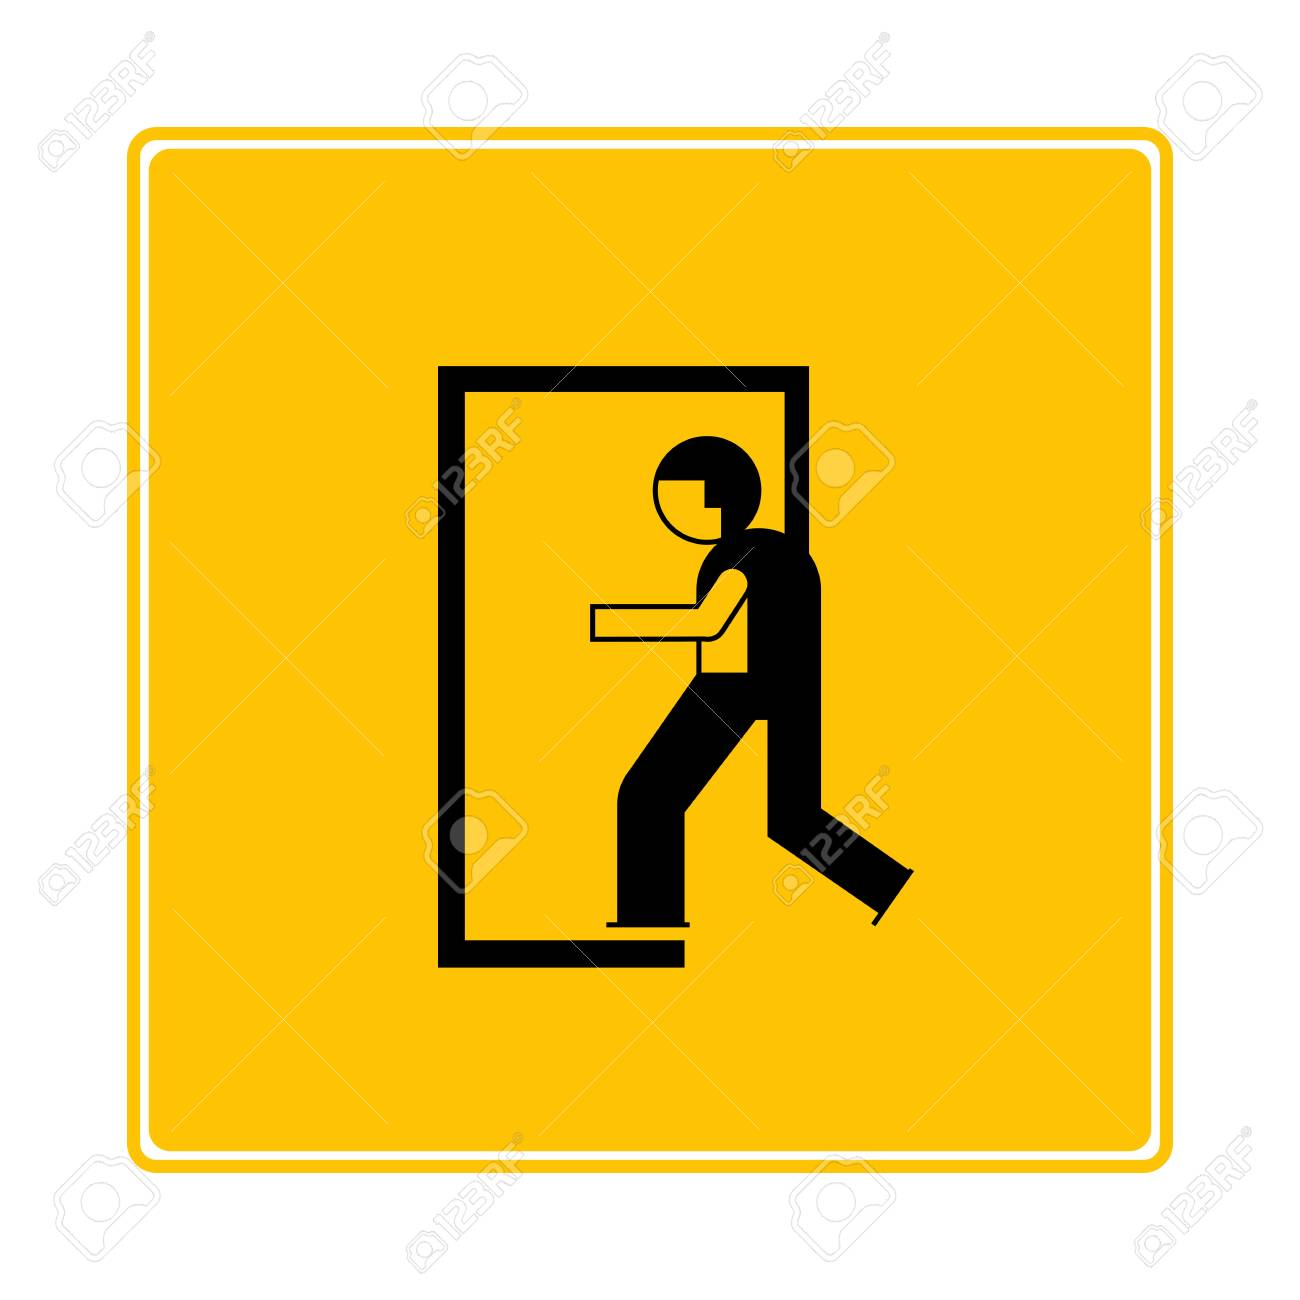 Emergency Exit Person Walking Exit The Door Icon In Yellow 1300x1300